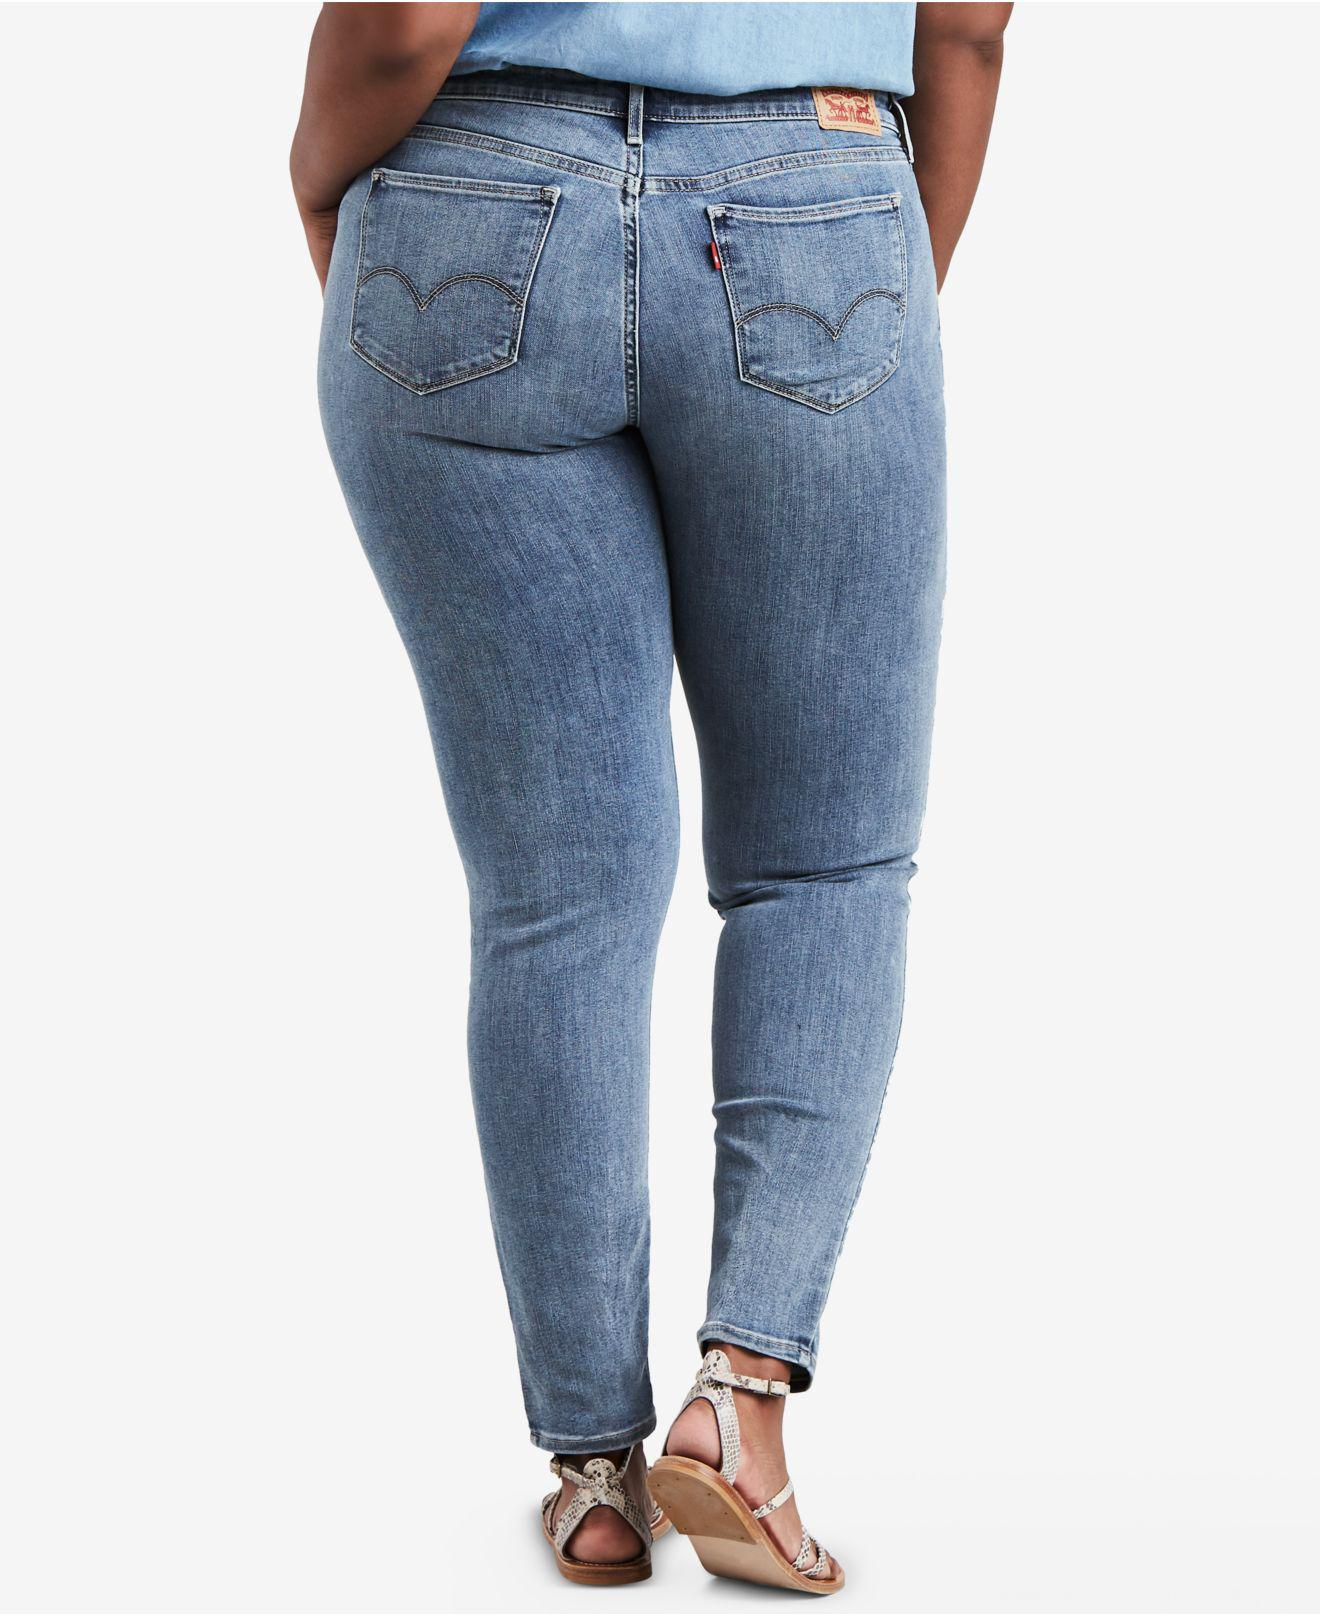 1d912cd13c1 Lyst - Levi s ® Plus Size 711 Distressed Skinny Jeans in Blue